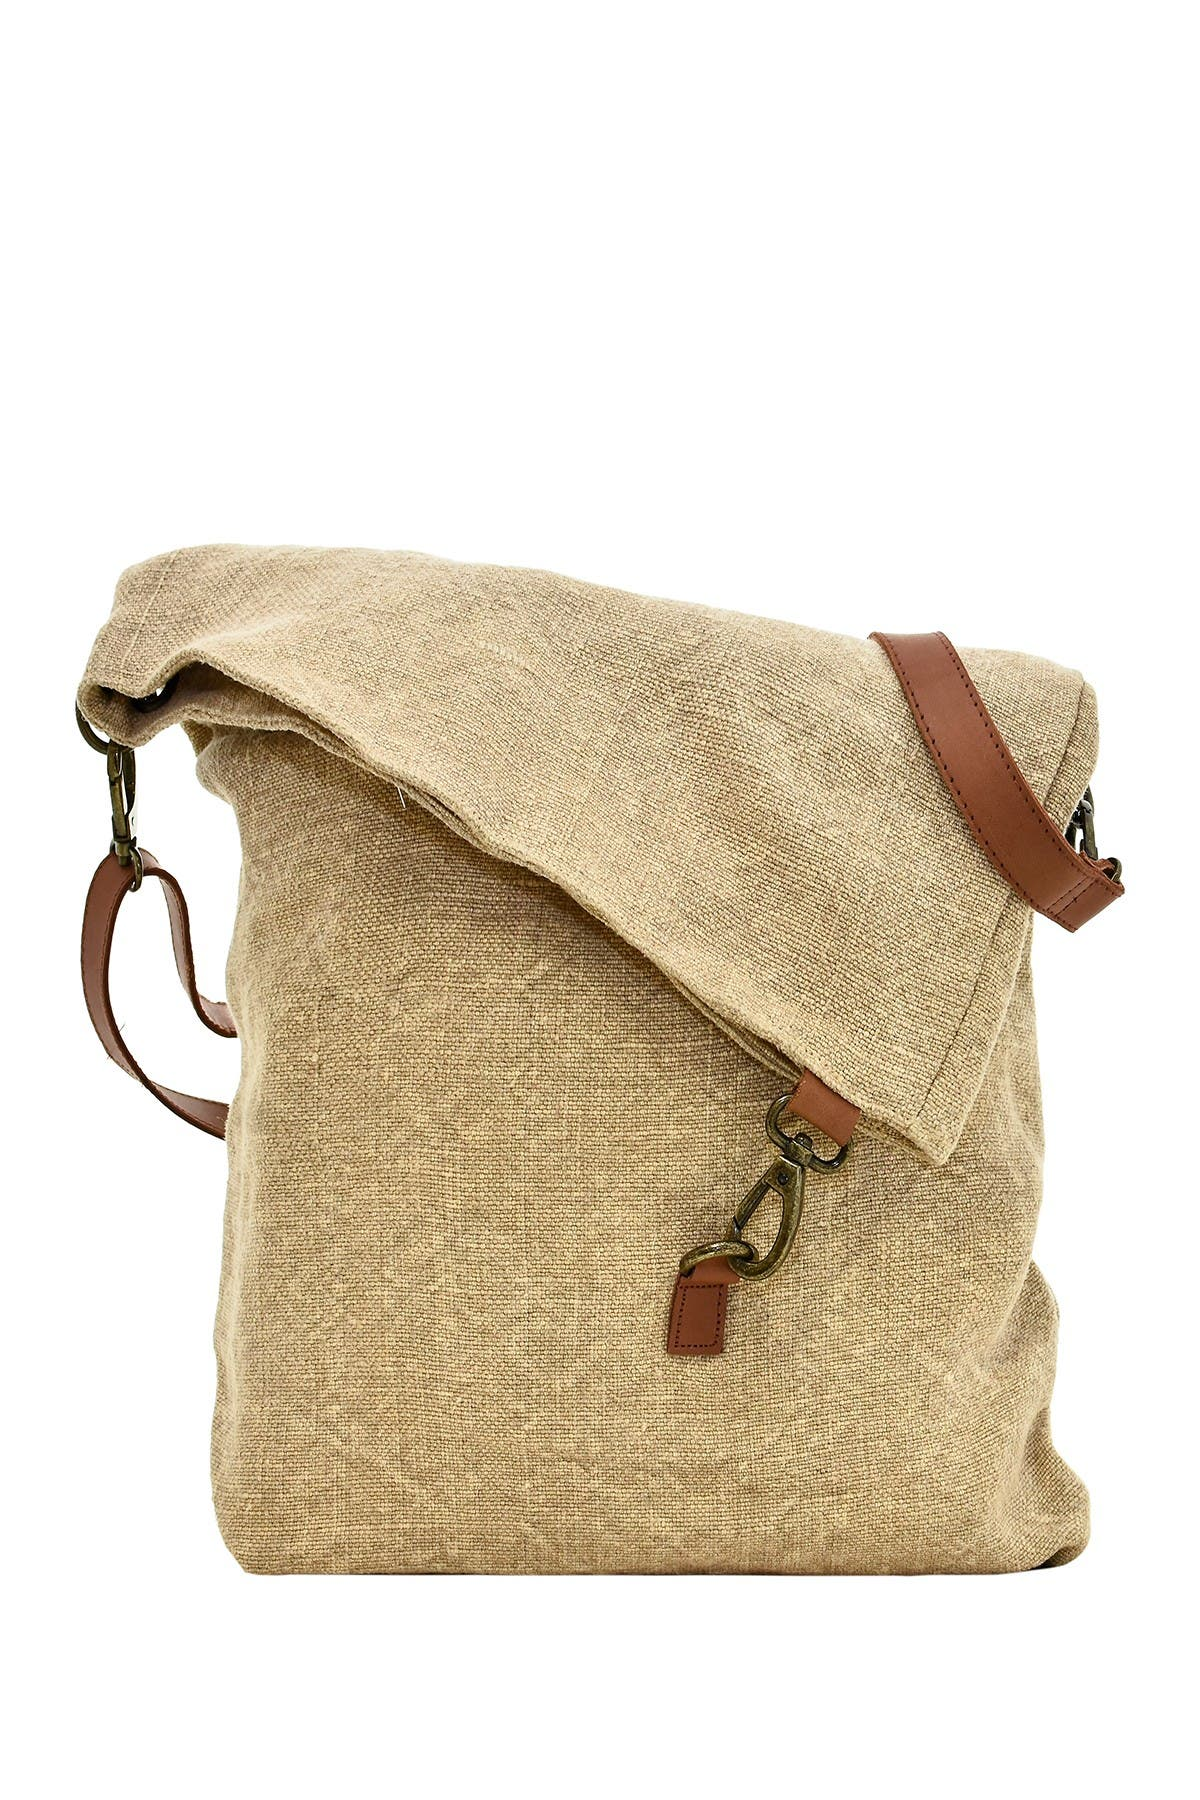 Image of Vintage Addiction Foldover Jute Crossbody Bag